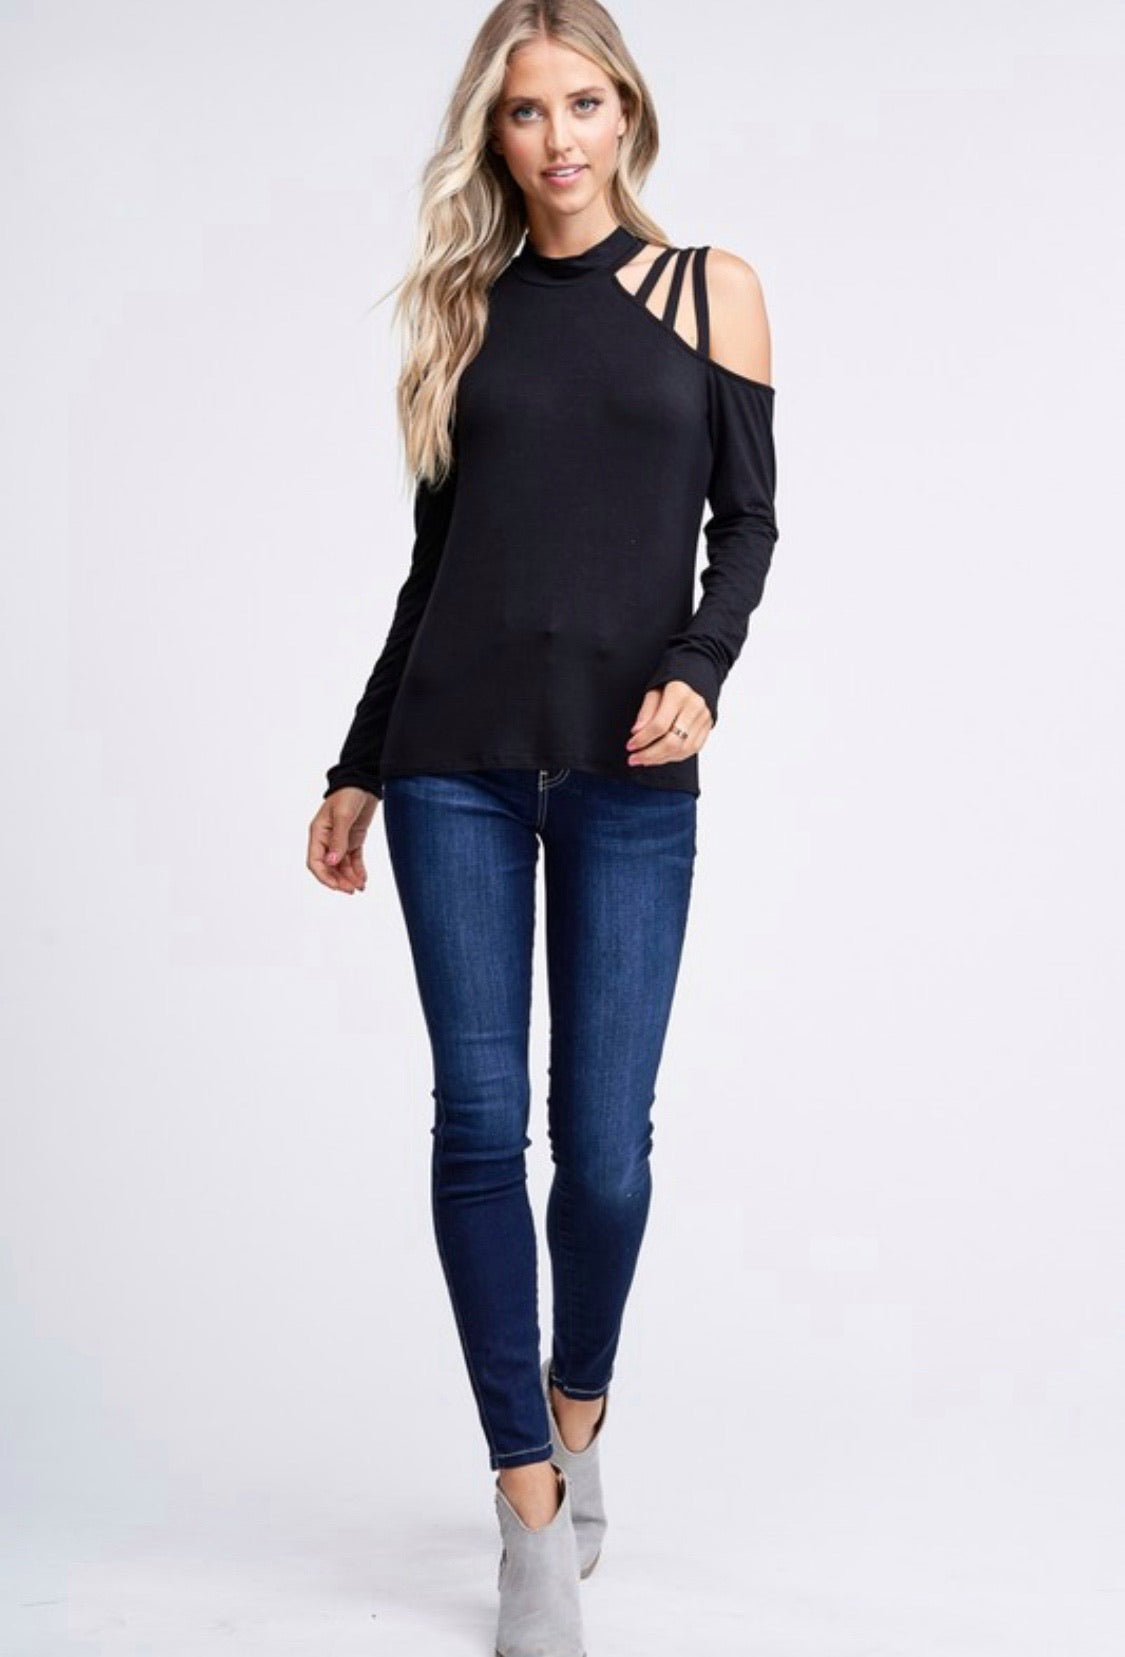 Black Long Sleeve w/ Strappy Shoulder Detail